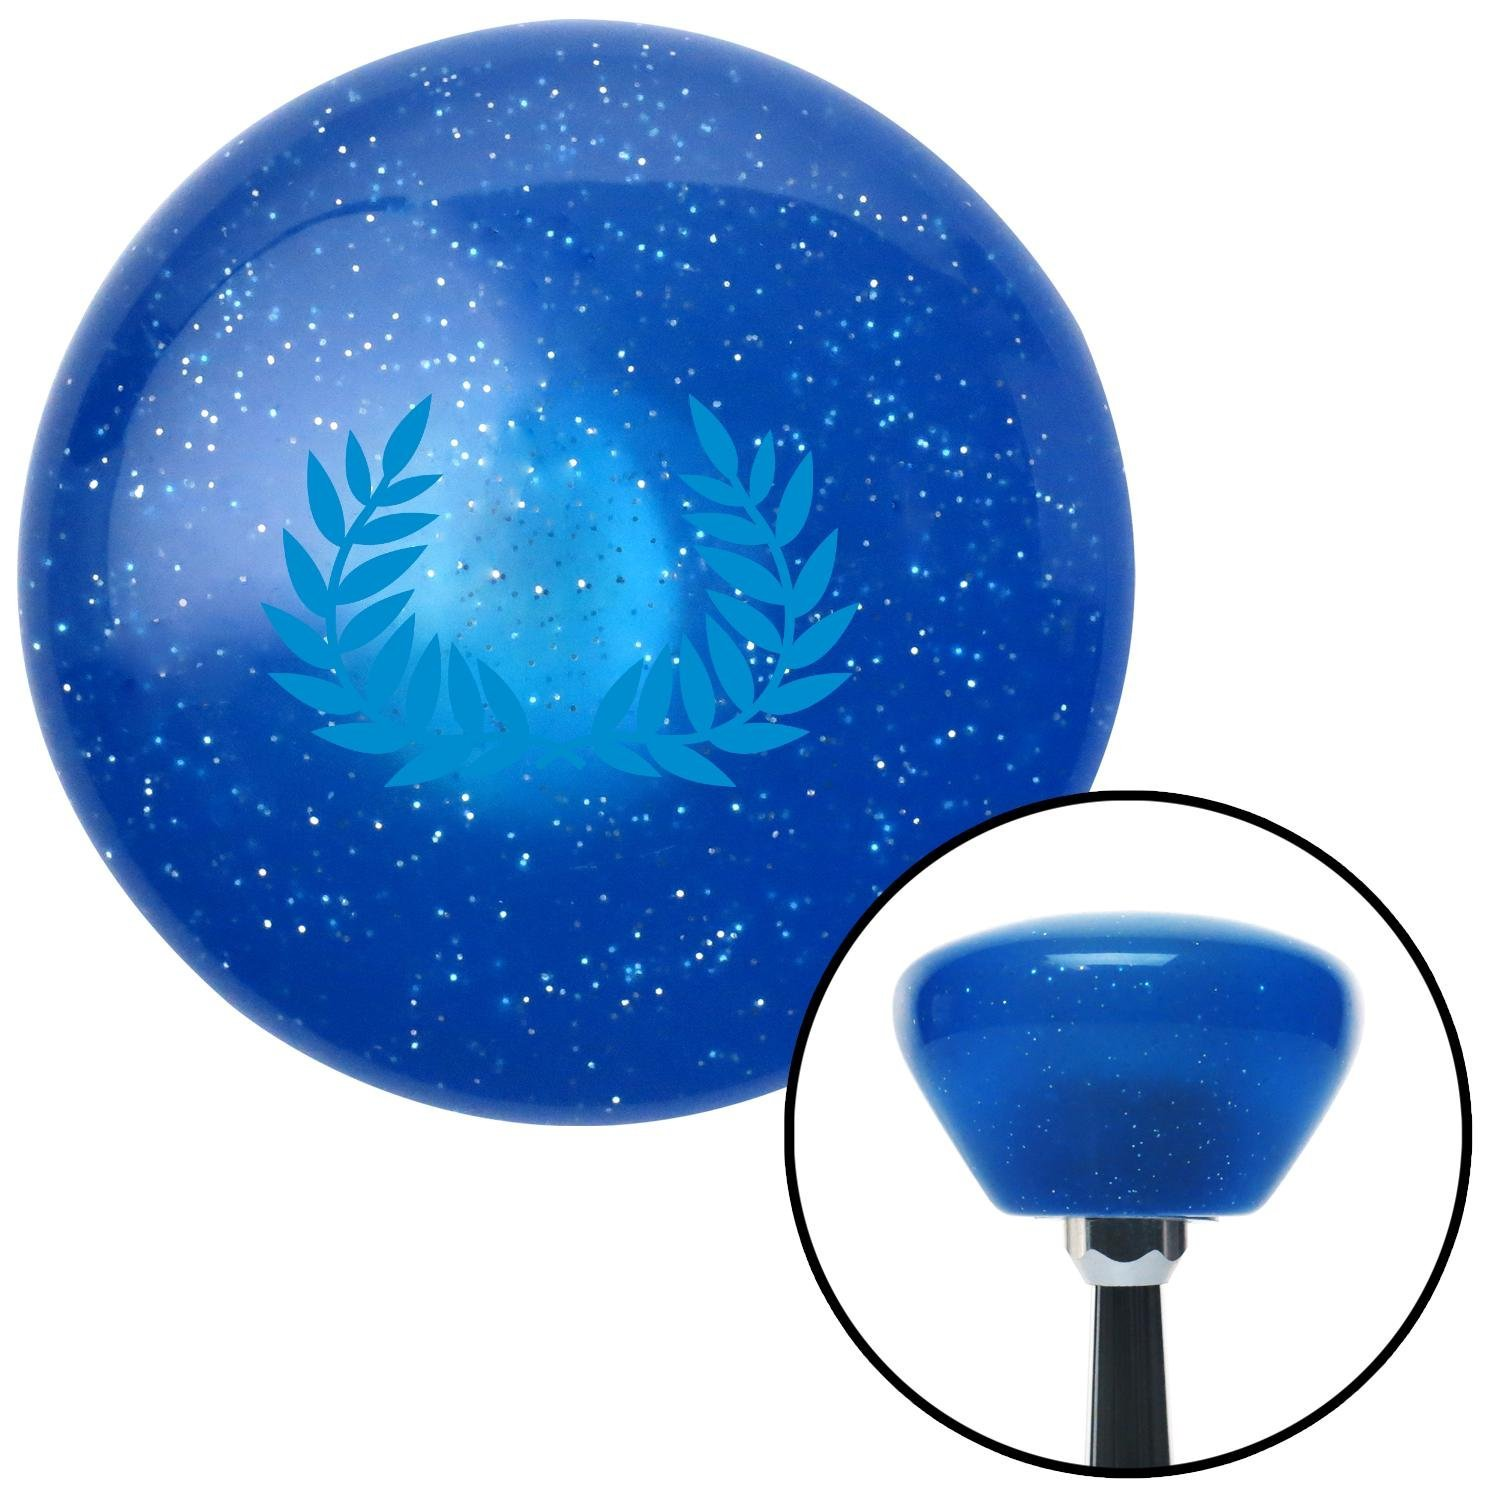 Blue 2 Branches Pointing Up American Shifter 186980 Blue Retro Metal Flake Shift Knob with M16 x 1.5 Insert